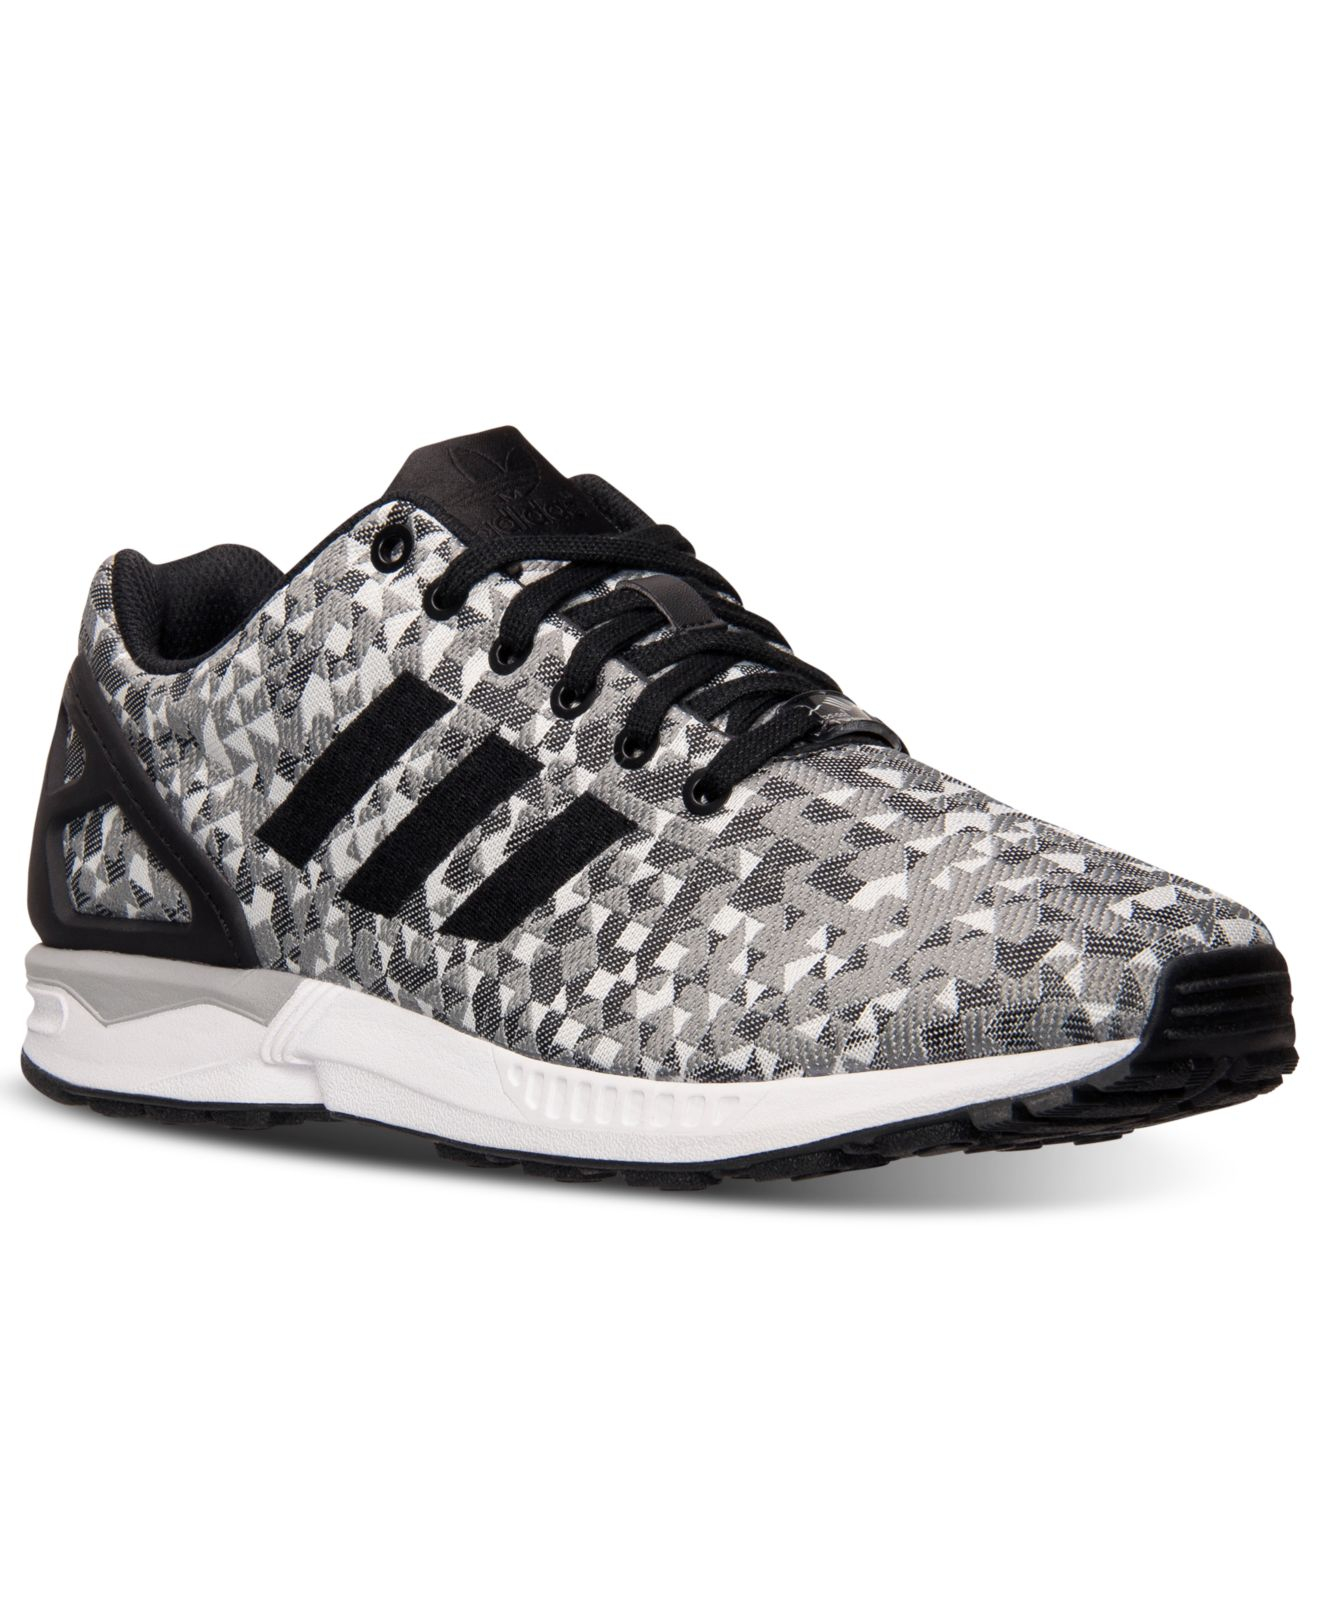 Adidas Zx Fluxes Polyvore